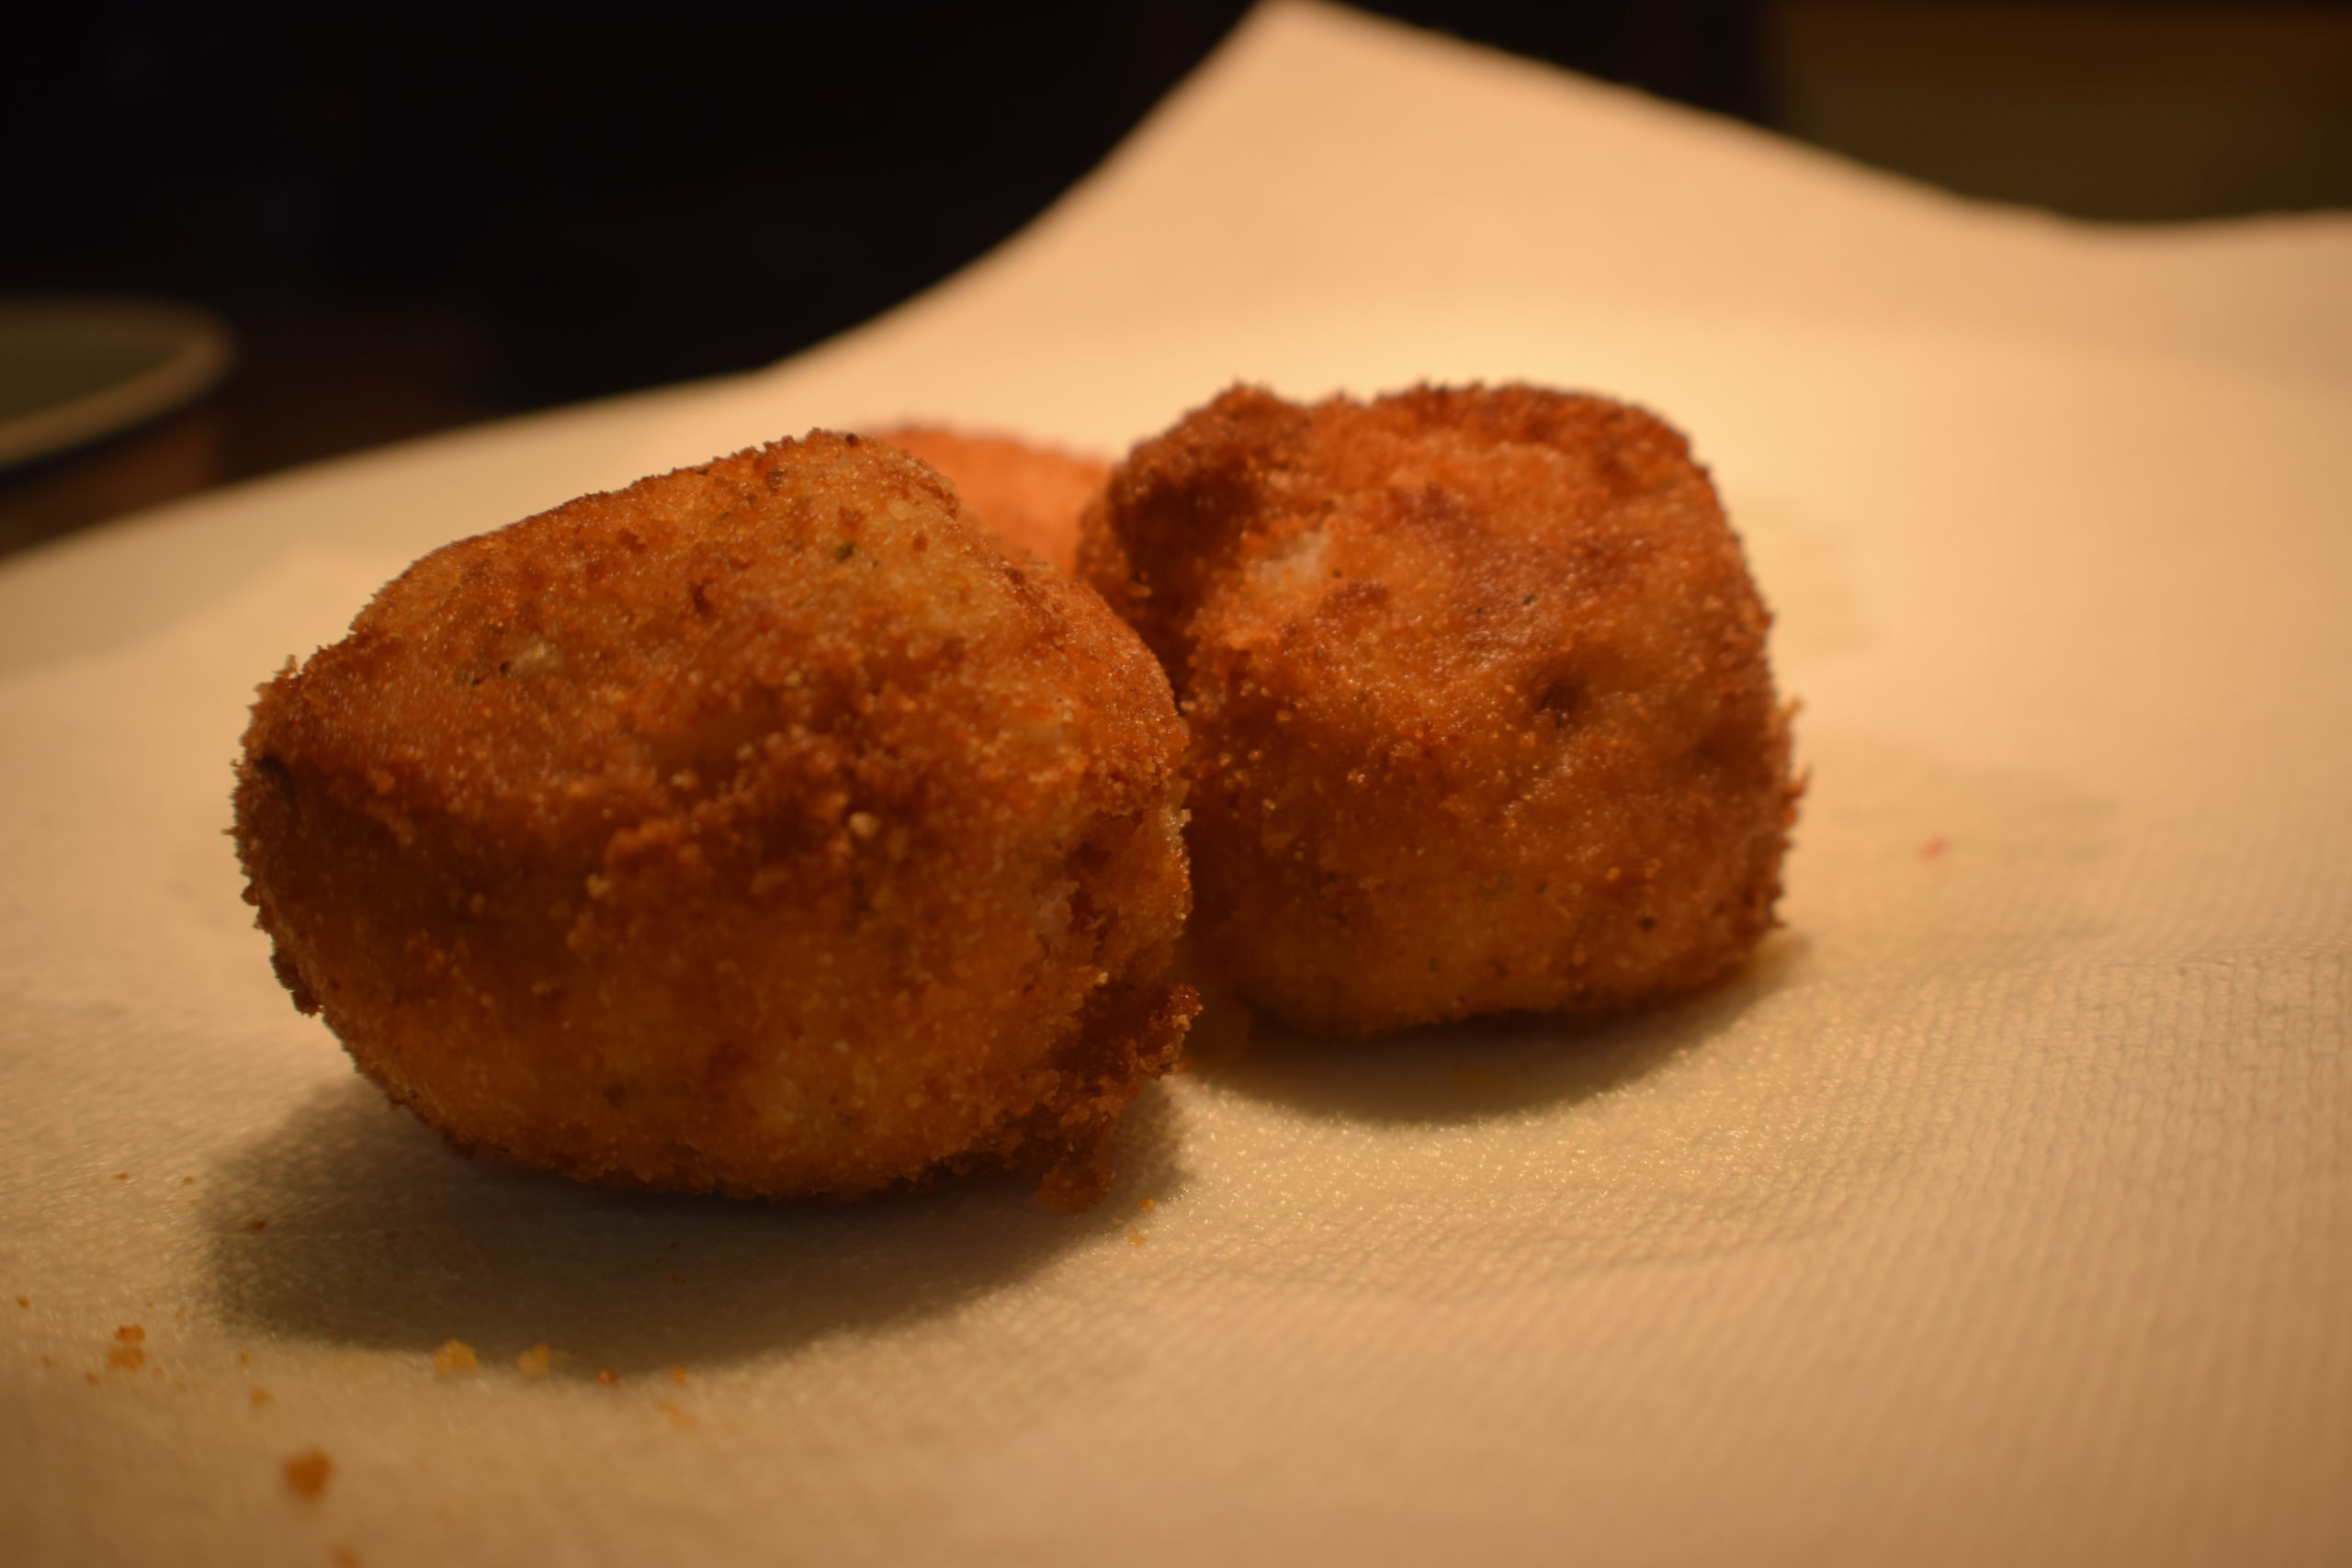 breaded potato balls on paper towel catching grease